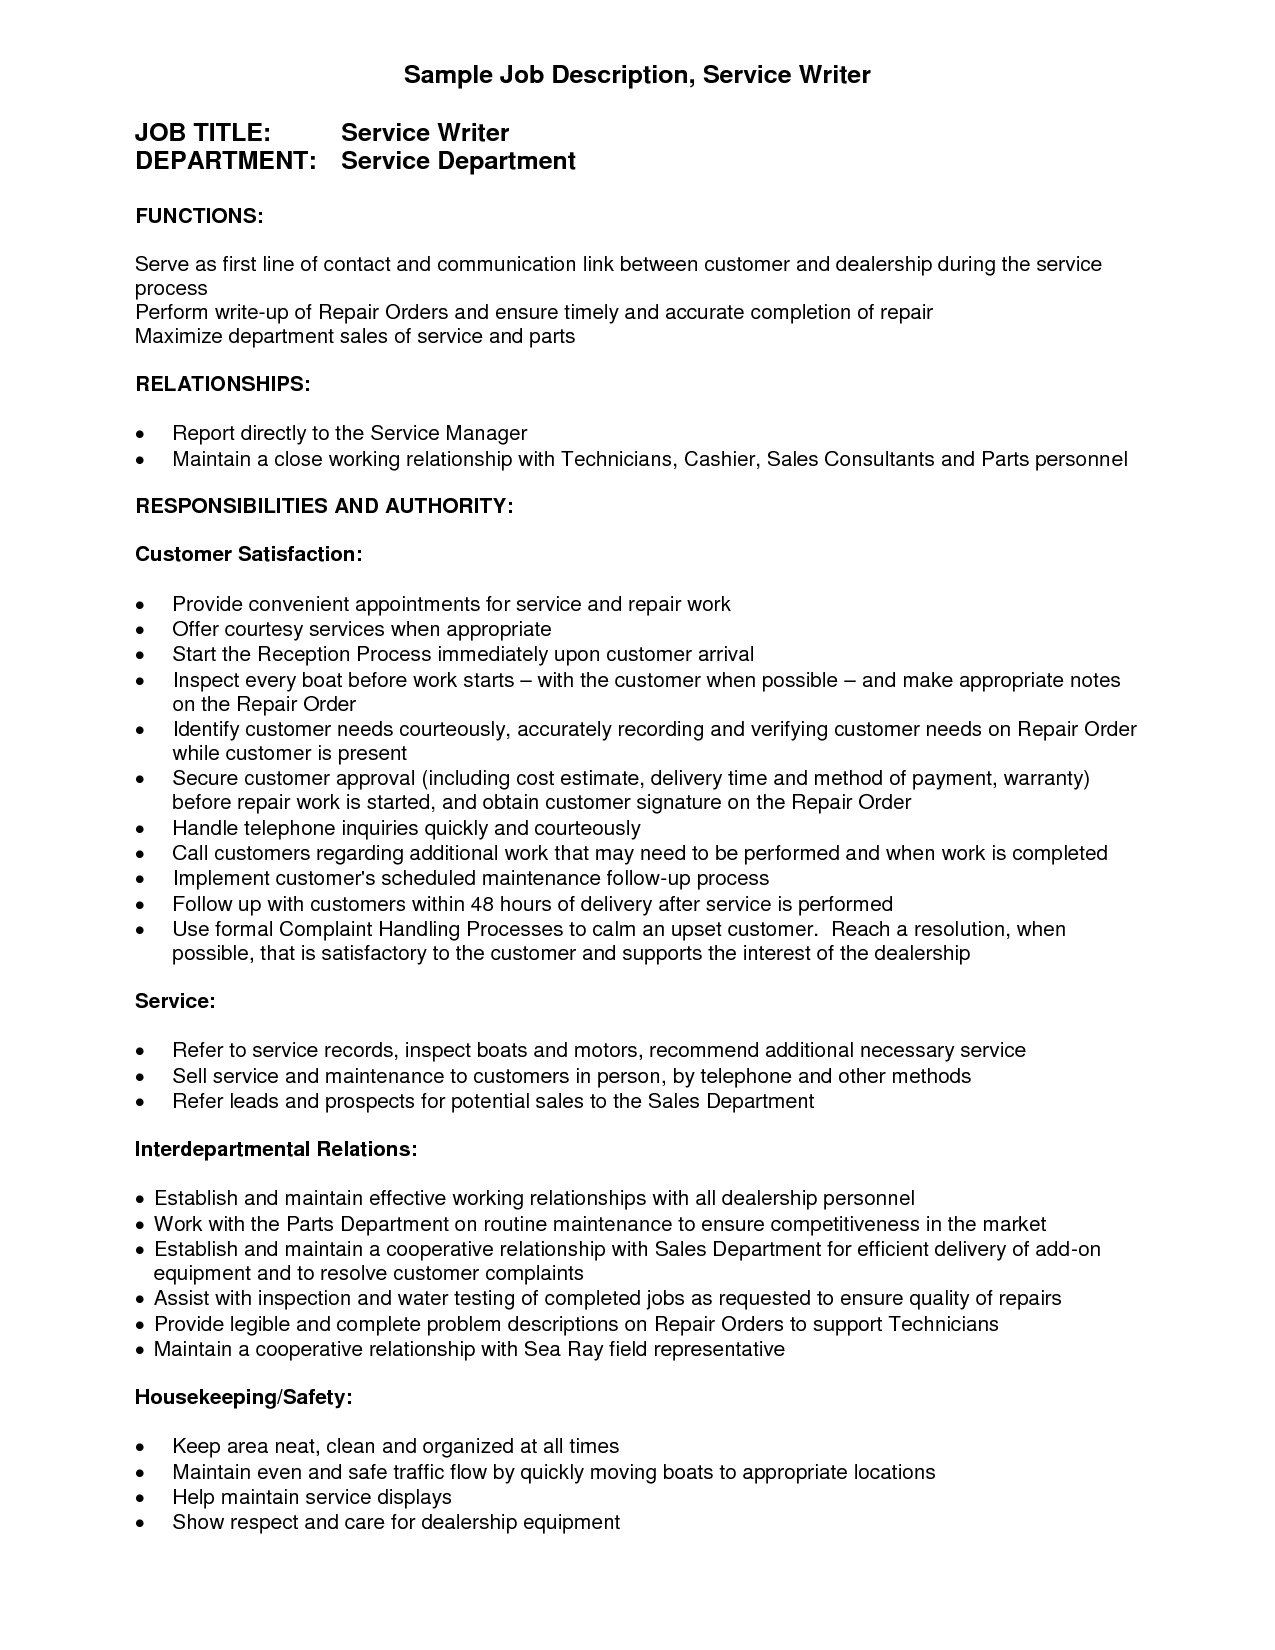 going paperless letter to customers template Collection-Resume Writing Service Best TemplateWriting A Resume Cover letter examples 4-c